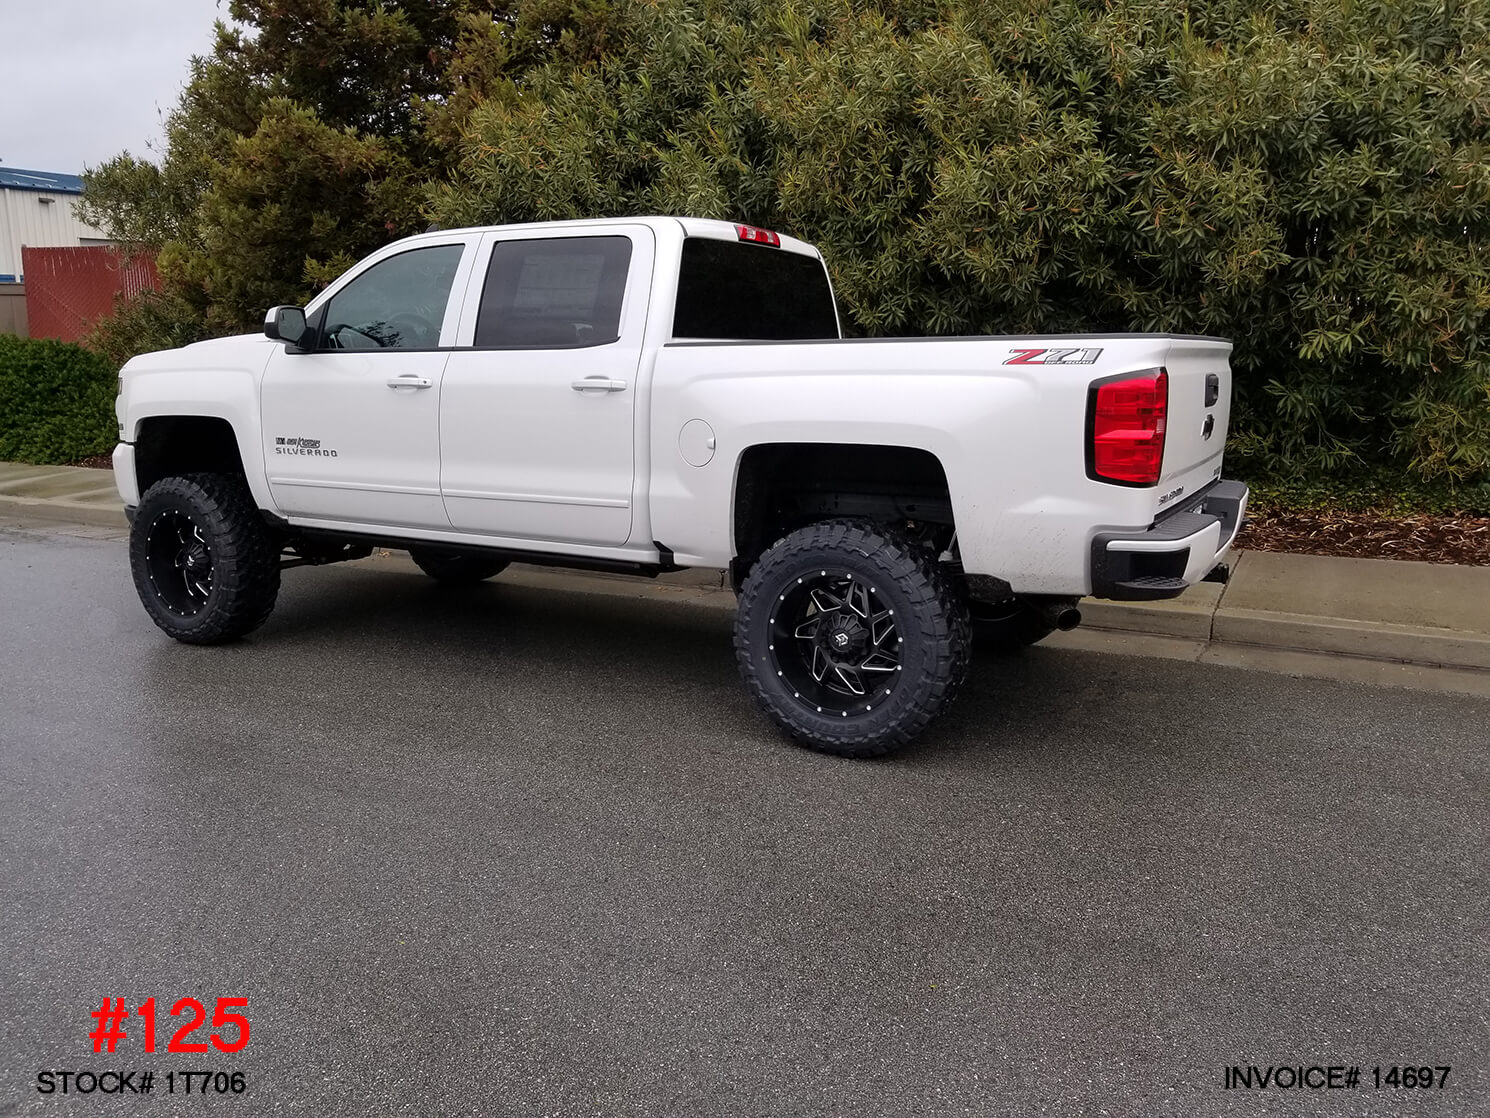 All Chevy chevy 1500 hd : 2018 CHEVY 1500 CREW CAB #1T706   Truck and SUV Parts Warehouse